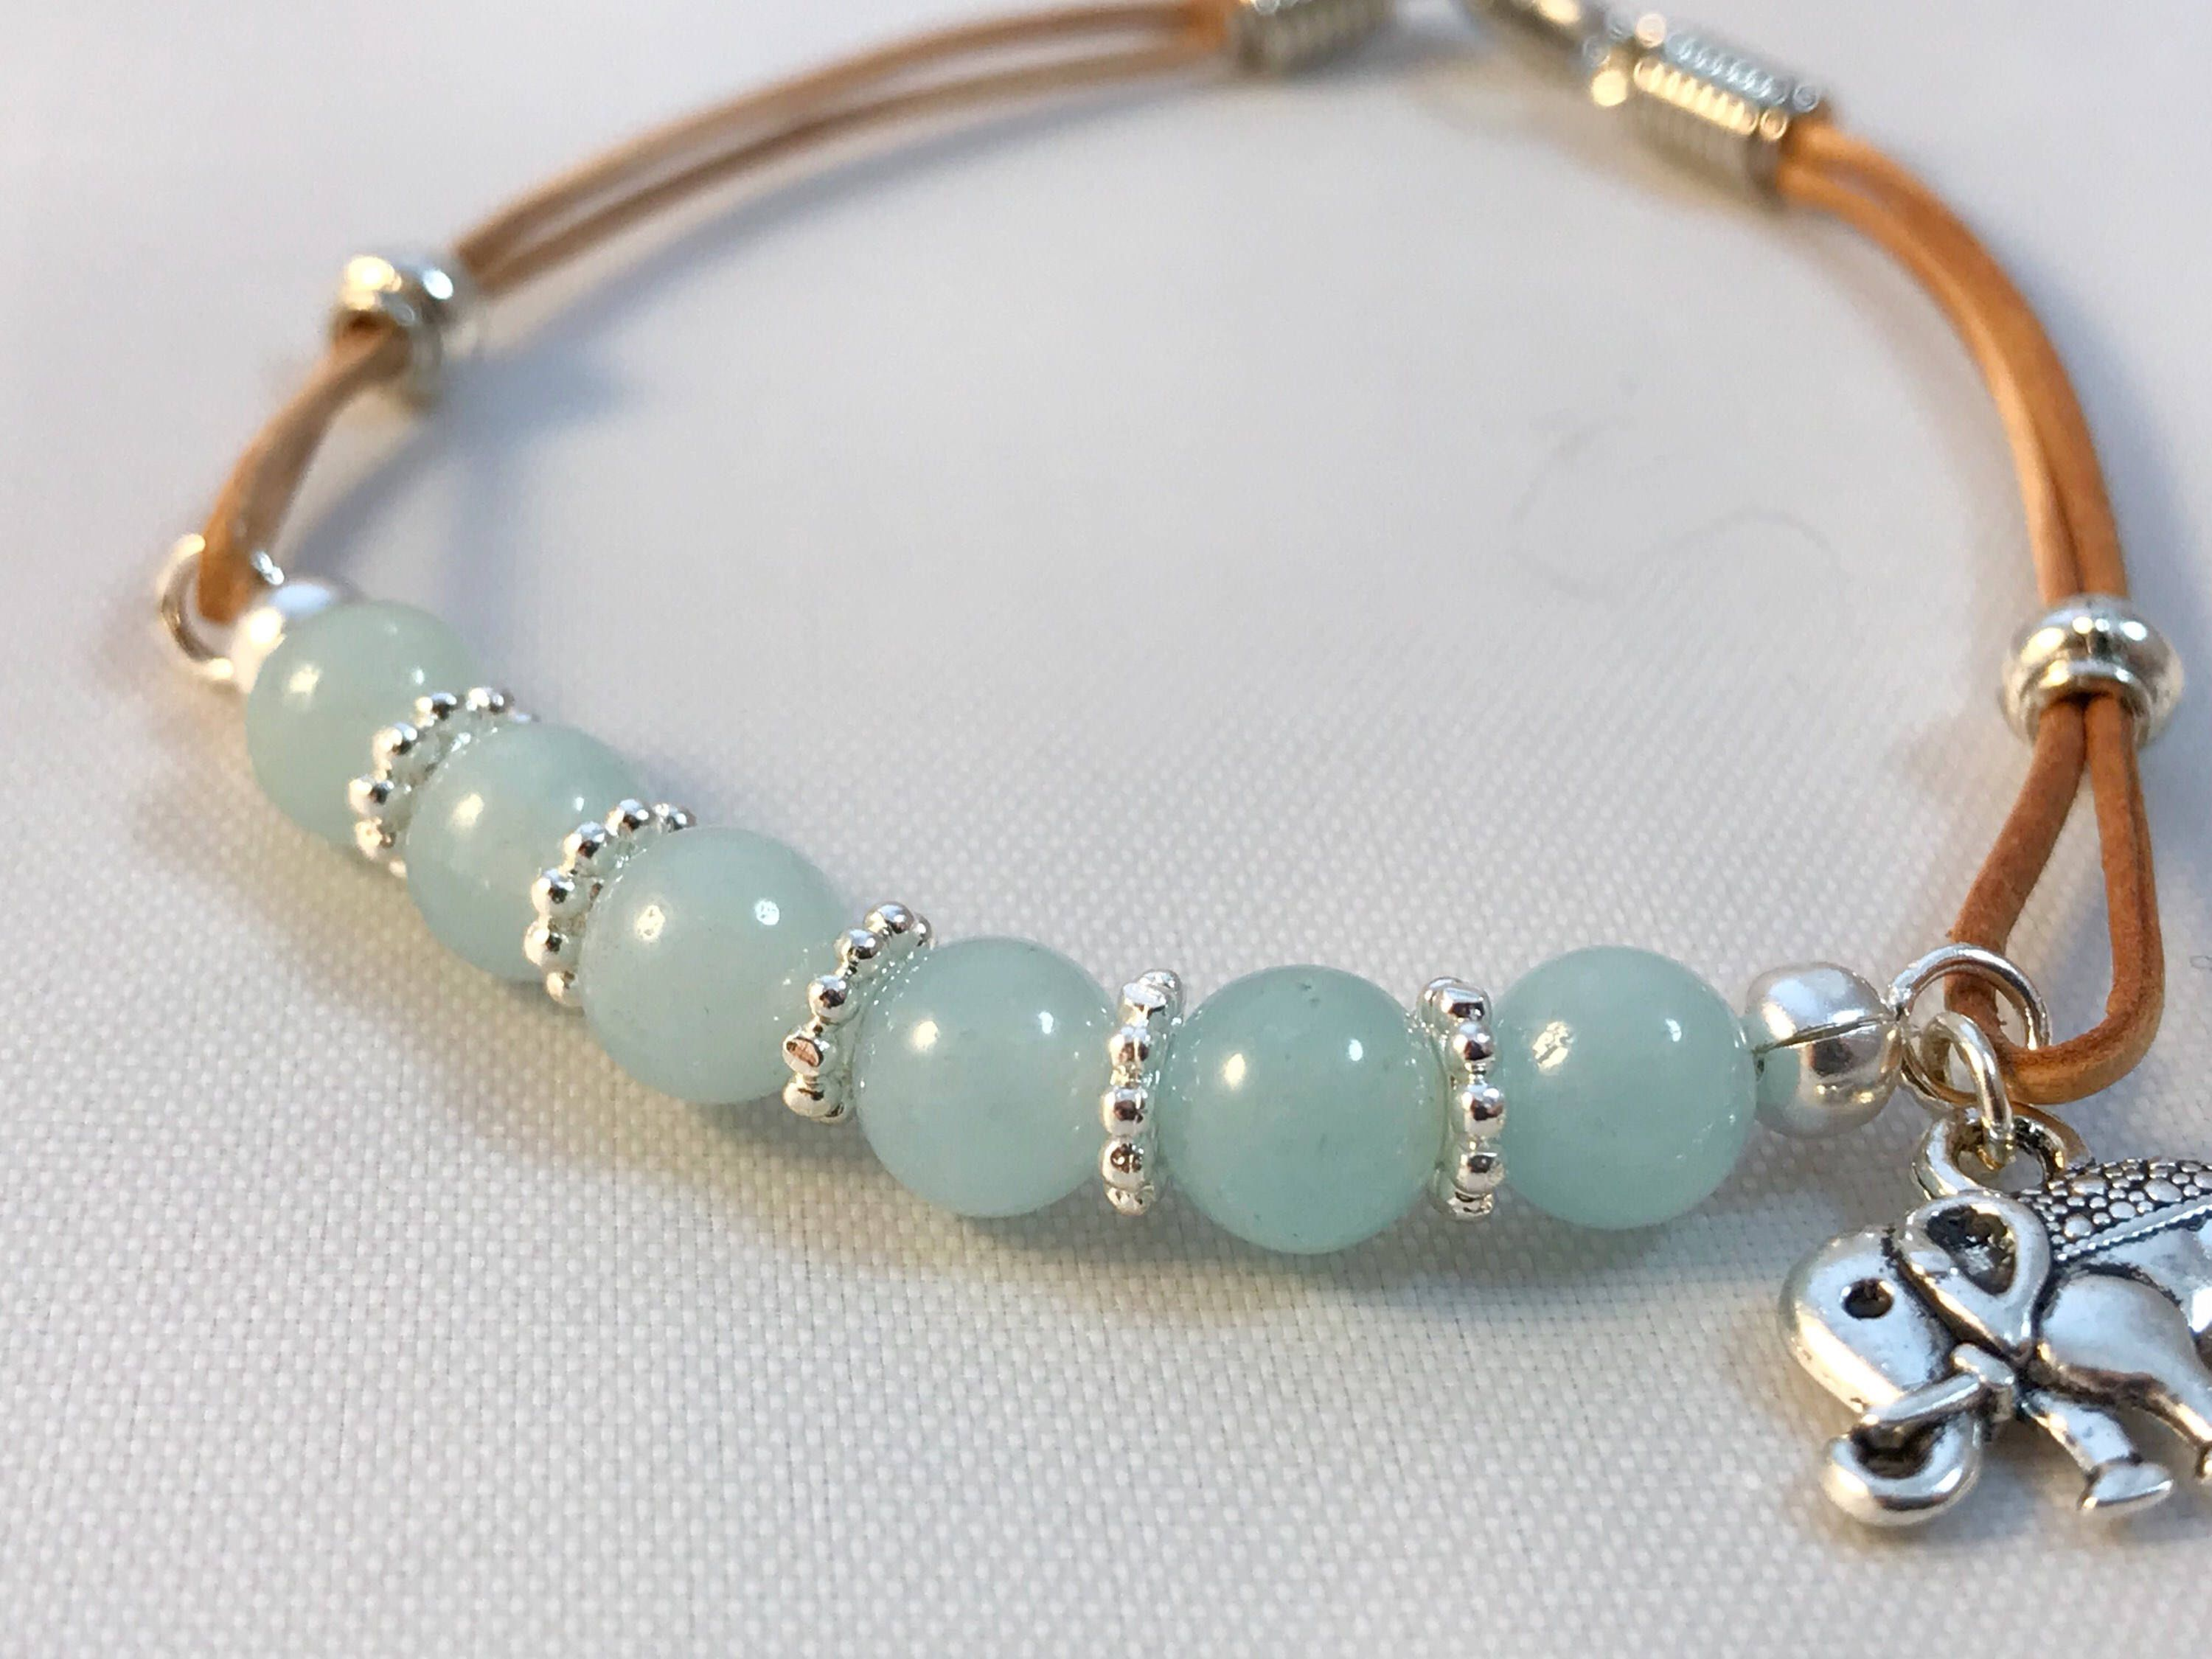 boho for aquamarine gemstone double bracelet pin her wrap ideas light blue